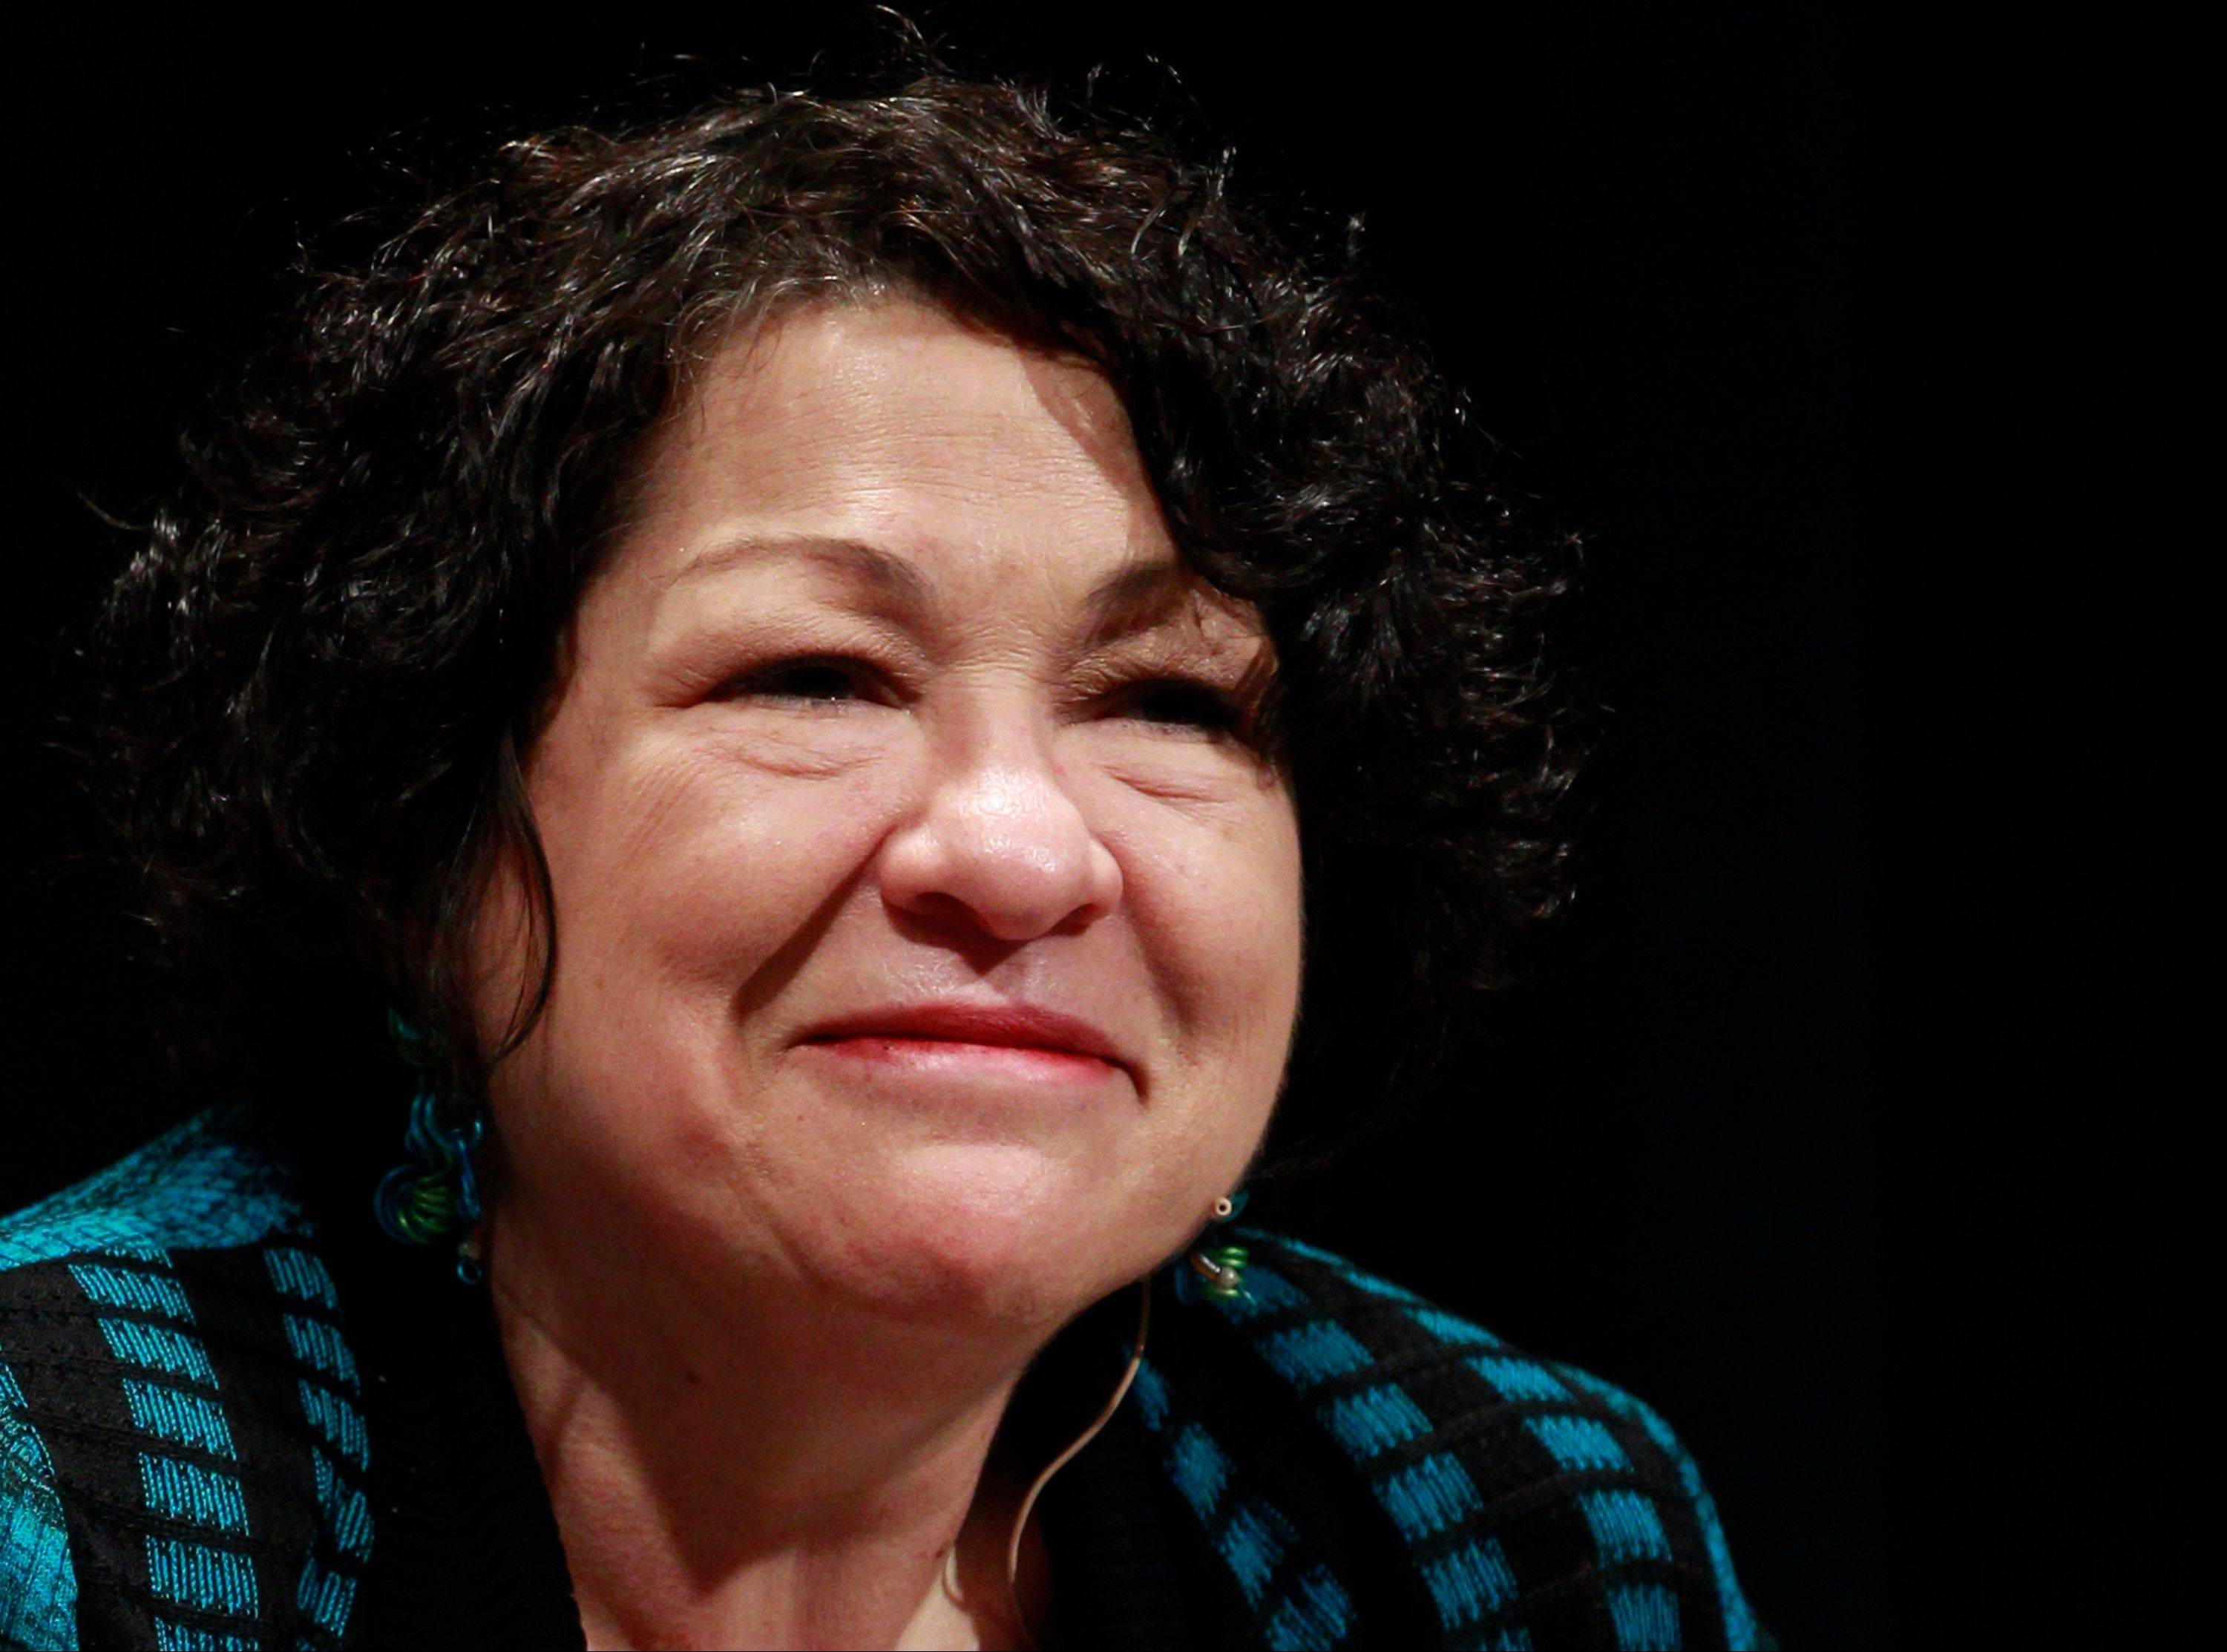 Supreme Court Justice Sonia Sotomayor on Tuesday evening blocked implementation of portions of President Barack Obama�s health care law that would have forced some religion-affiliated organizations to provide health insurance for employees that includes birth control.